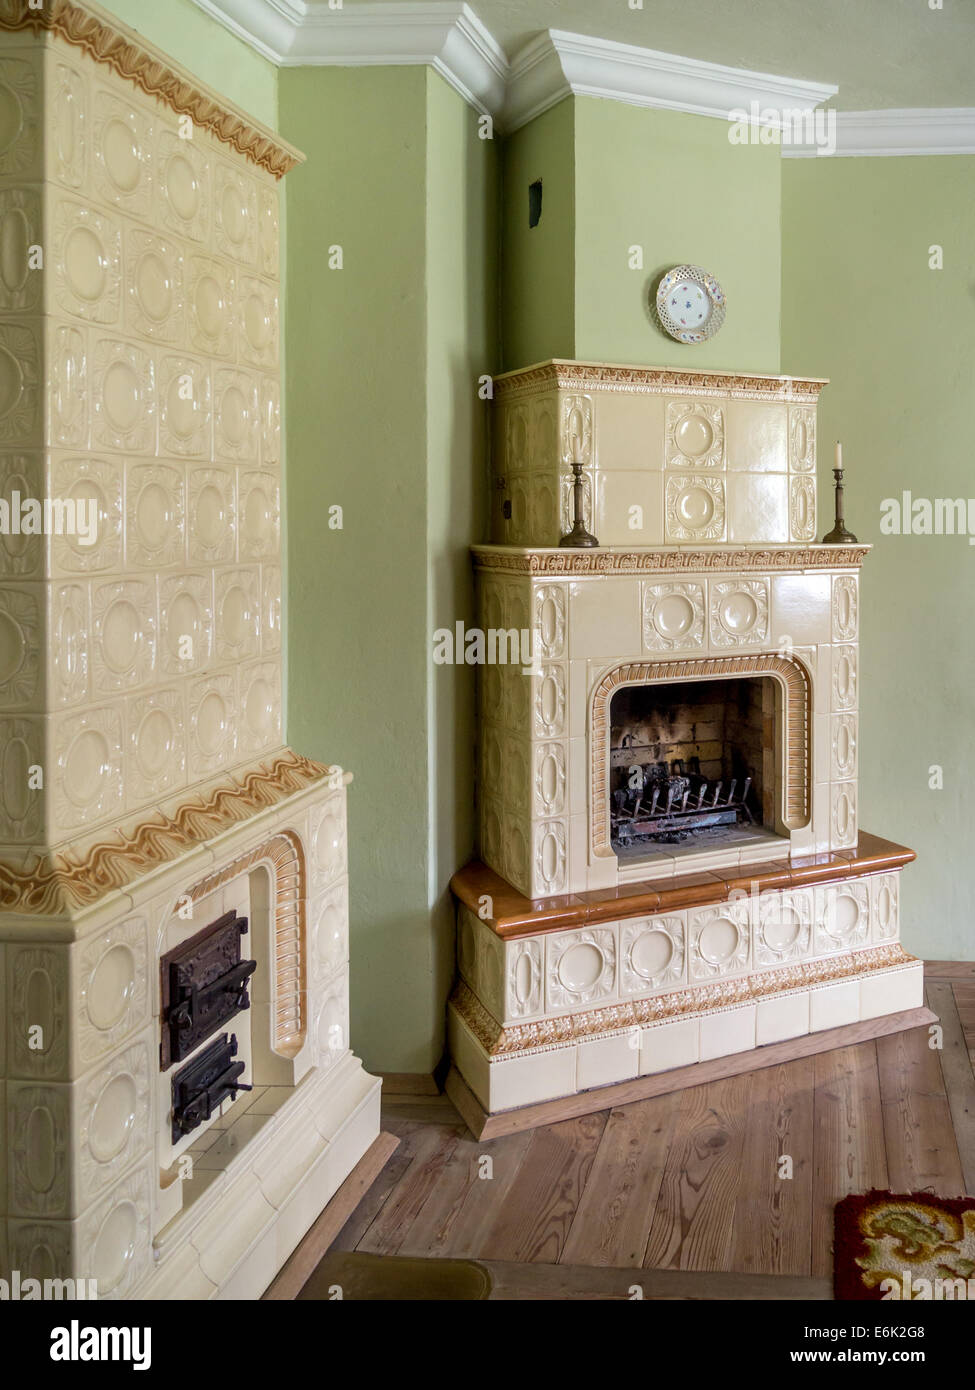 Retro style room with two tiled stoves - Stock Image